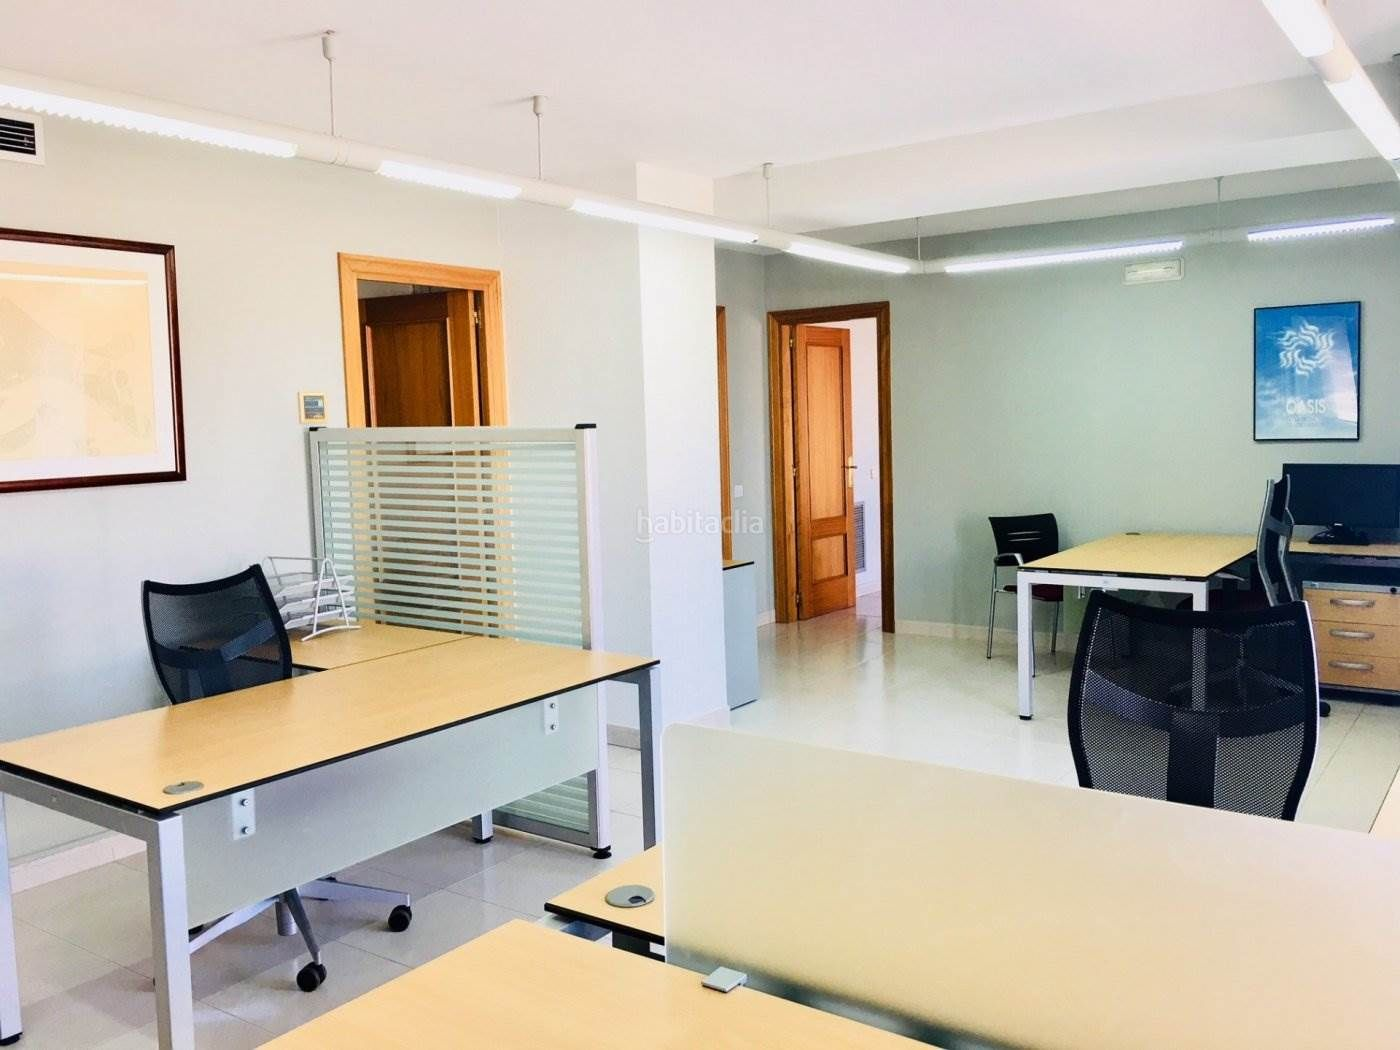 Rent Office space in Bons Aires. Oficina en bons aires